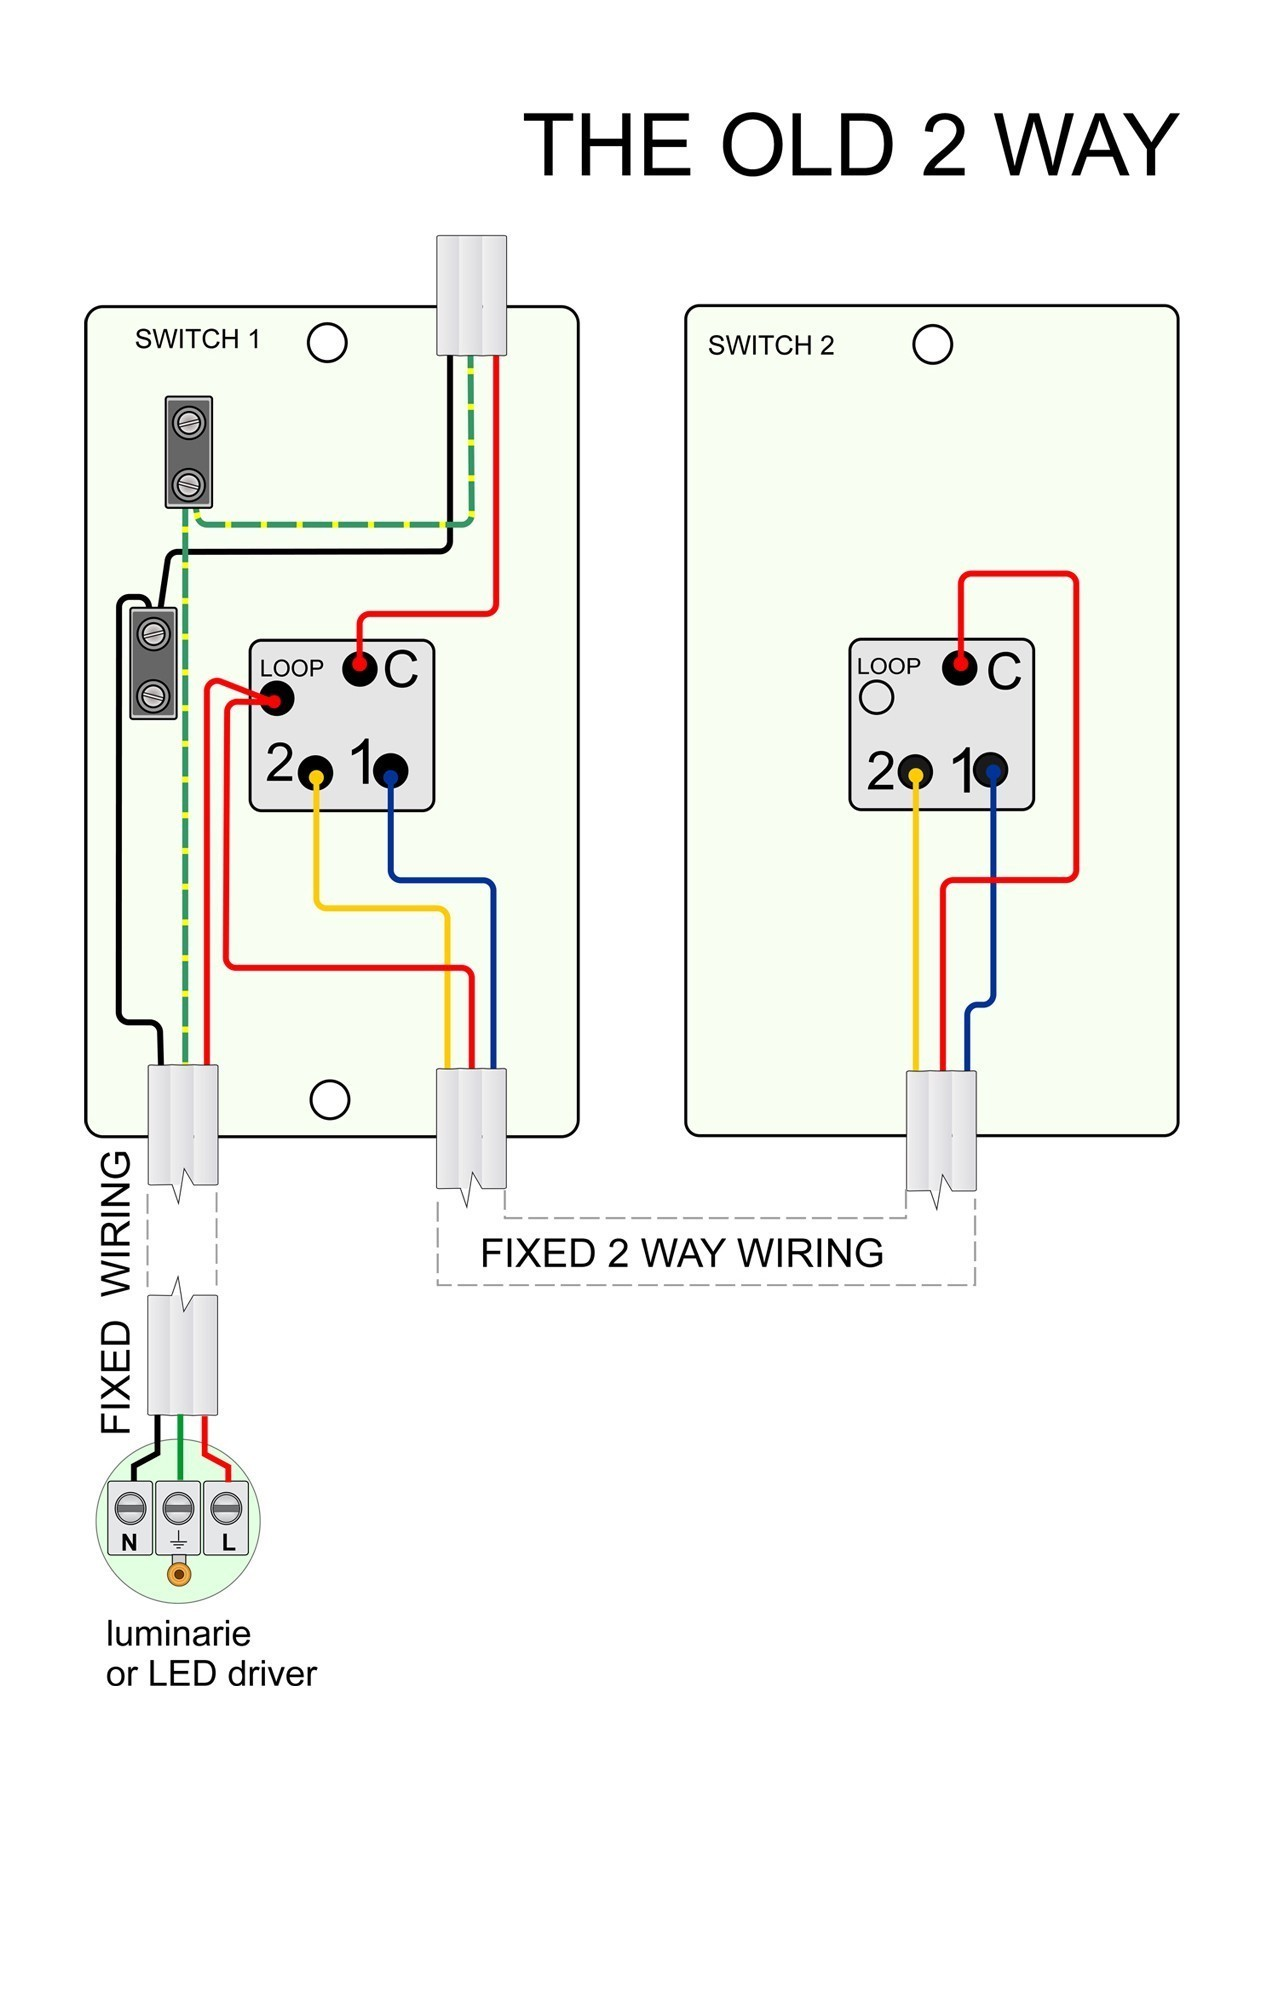 AR_9094] Switch Wiring Diagram Clipsal Wiring A Two Way Switch Wiring  Diagram Wiring Diagram